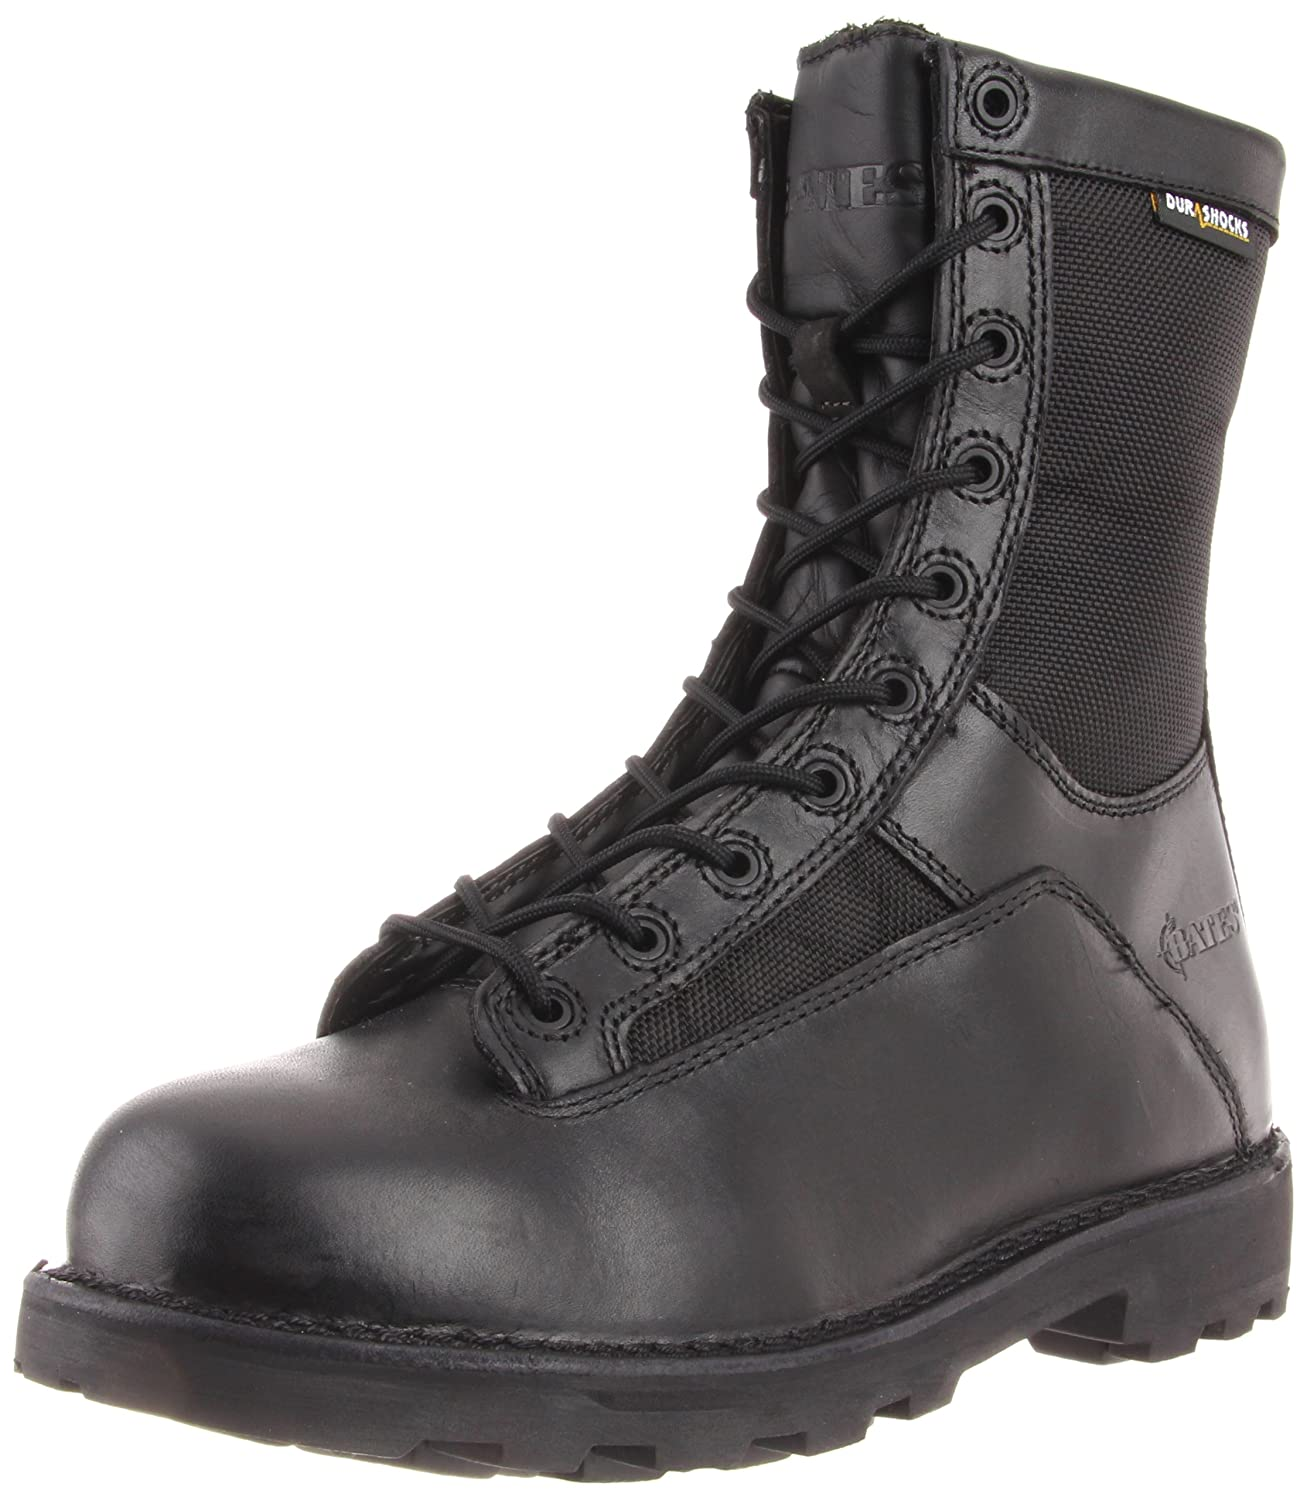 Bates Men's 8 Inches Durashocks Lace-to-Toe Work Boot Bates Tactical Footwear DEFENDER 8 ZIP BOOT-M